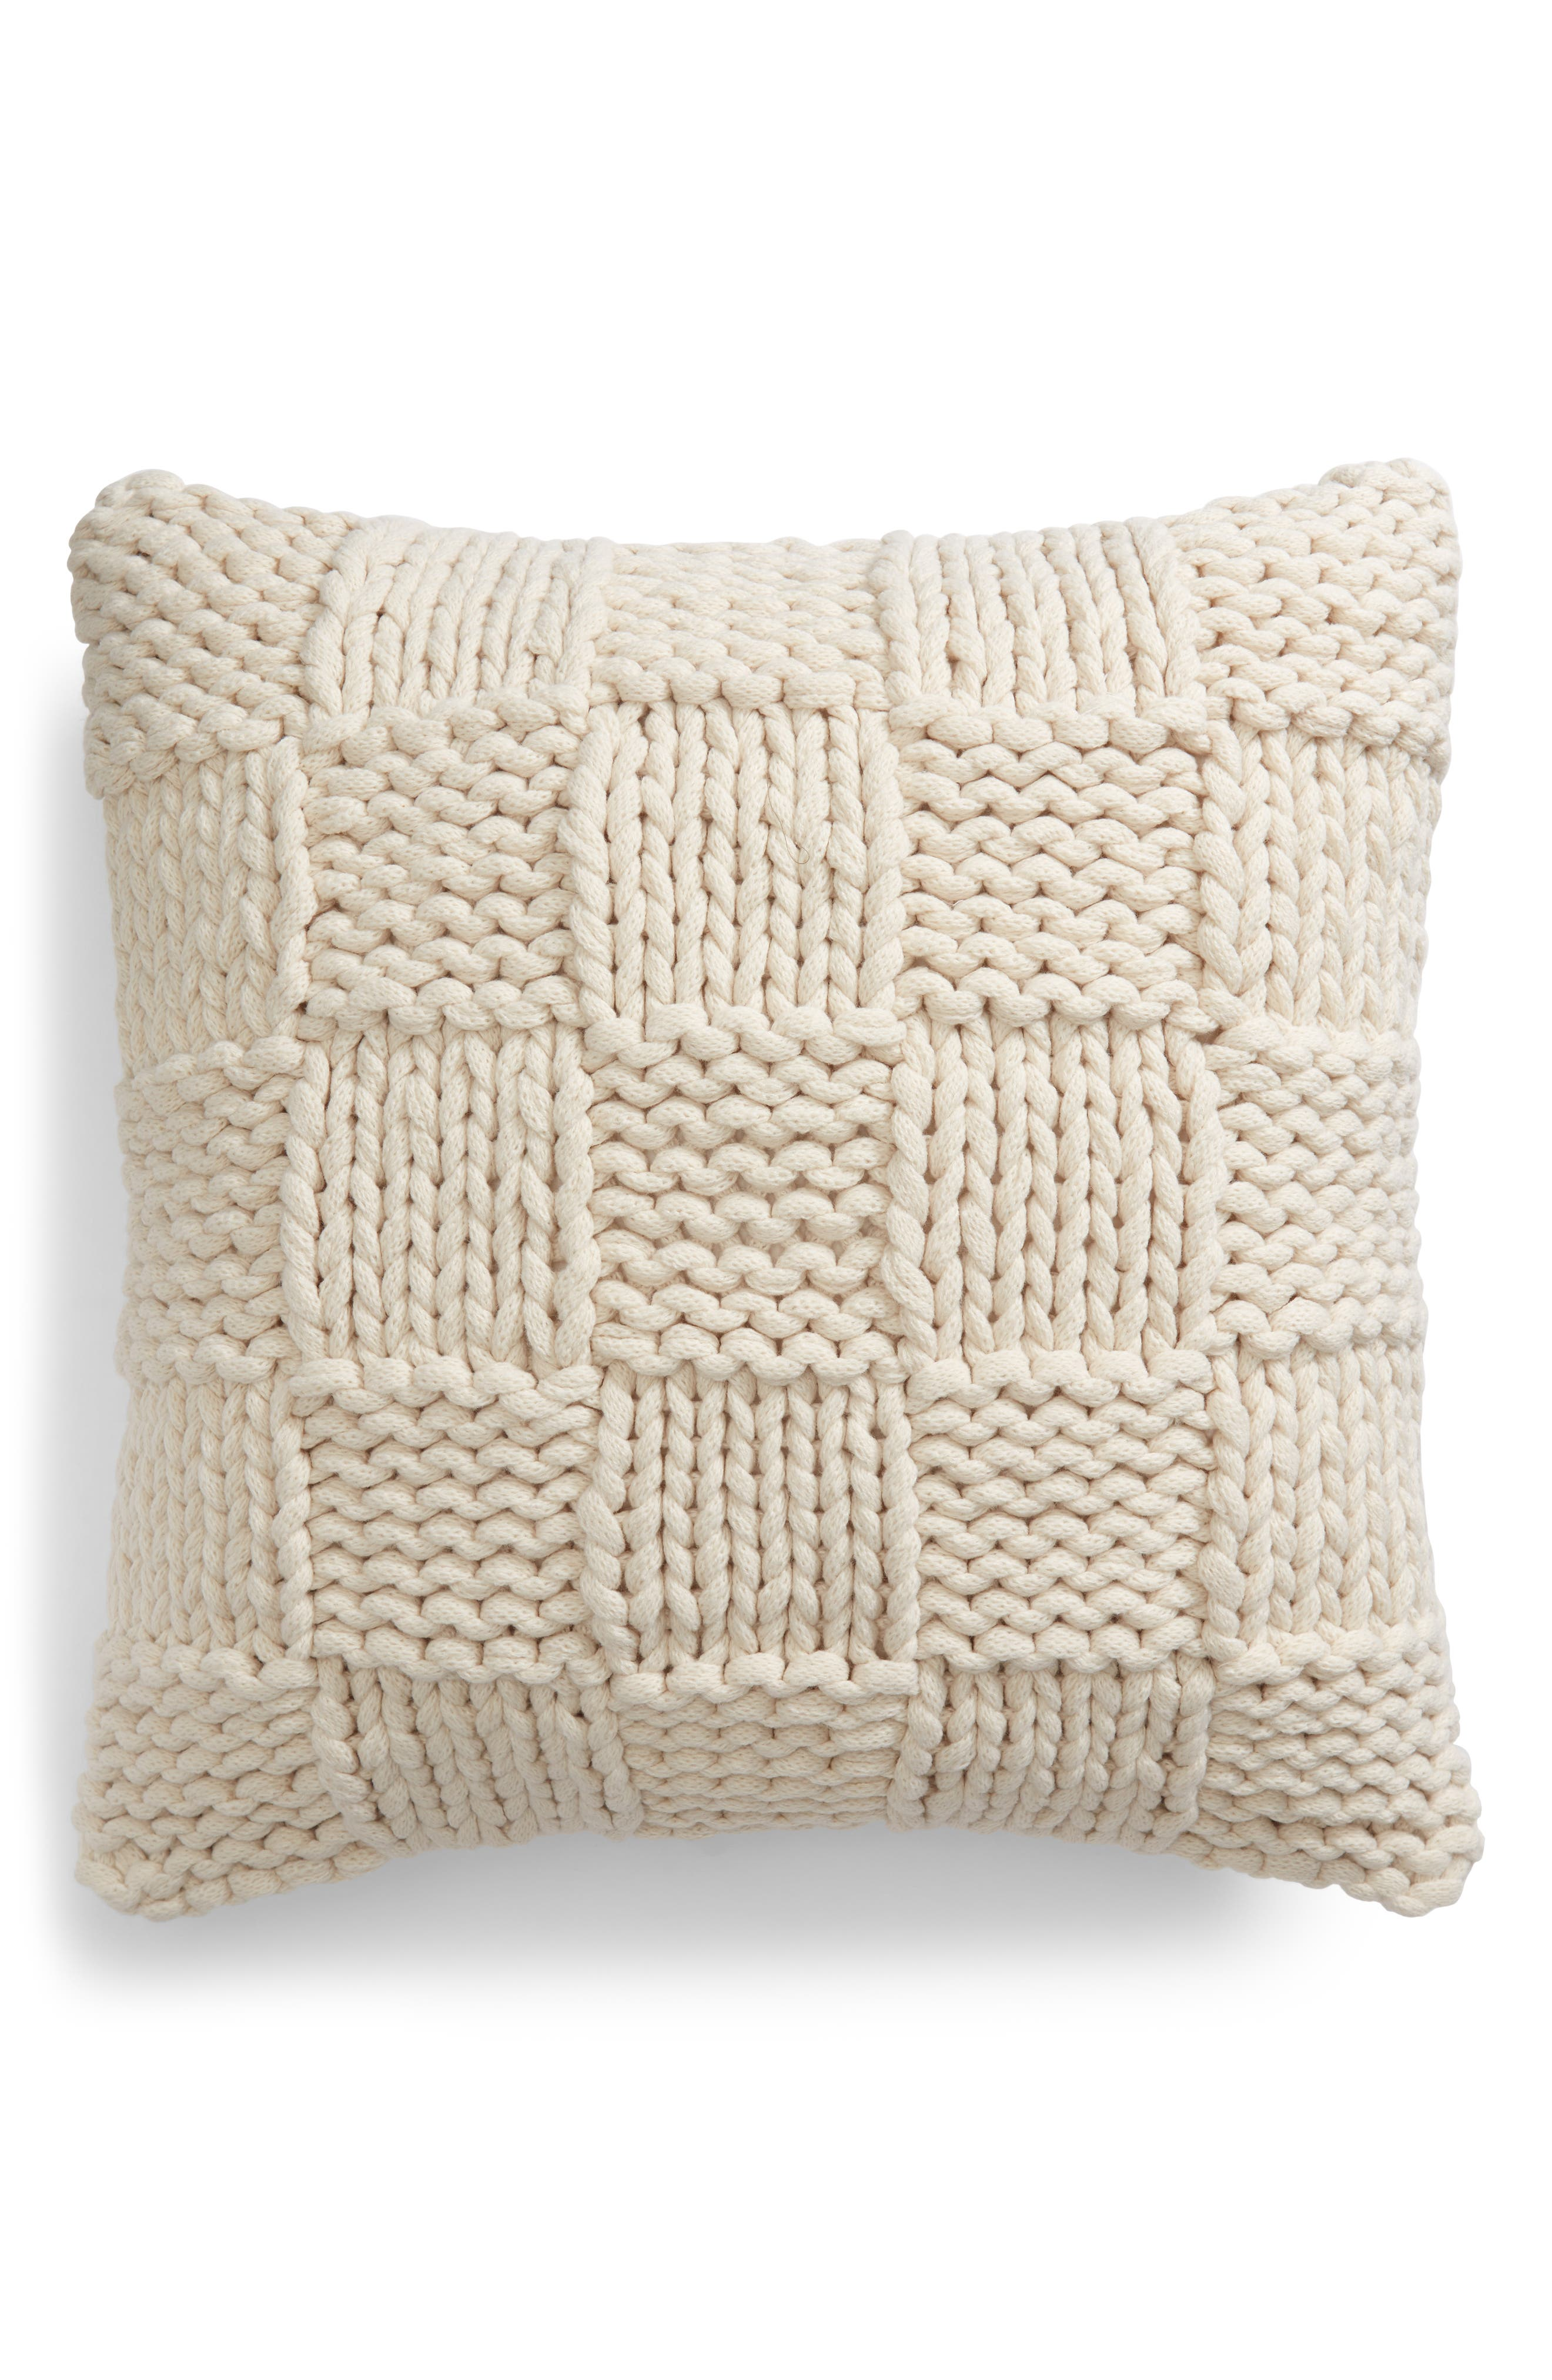 Jersey Rope Basket Accent Pillow,                             Main thumbnail 1, color,                             IVORY